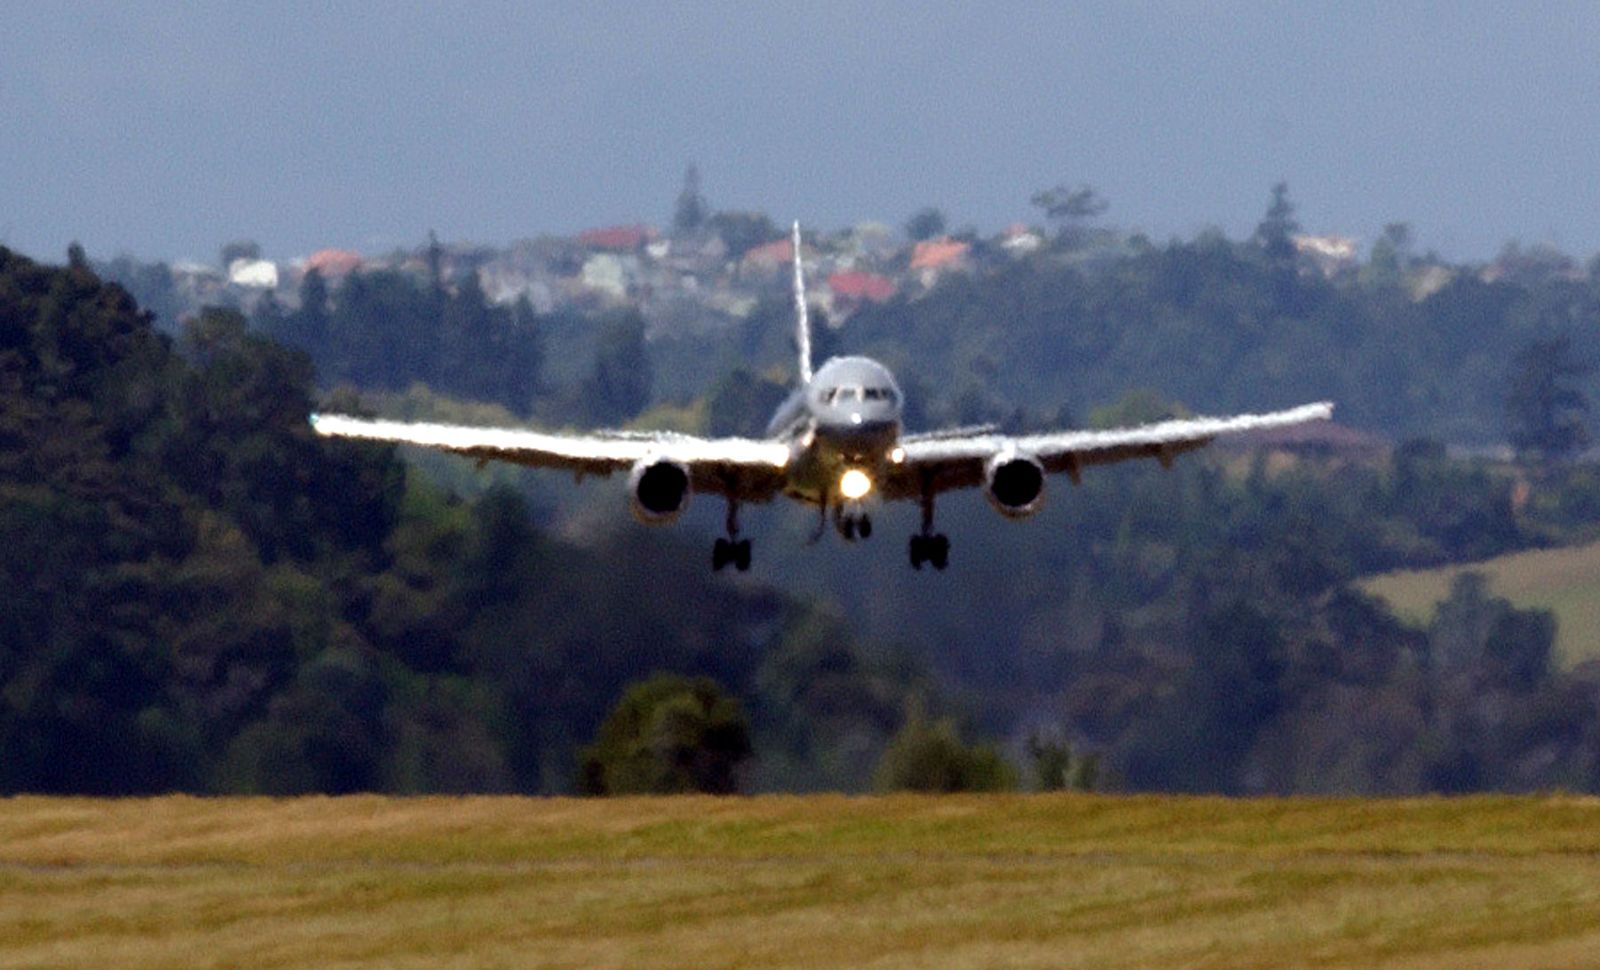 Boeing 757 approaches the runway